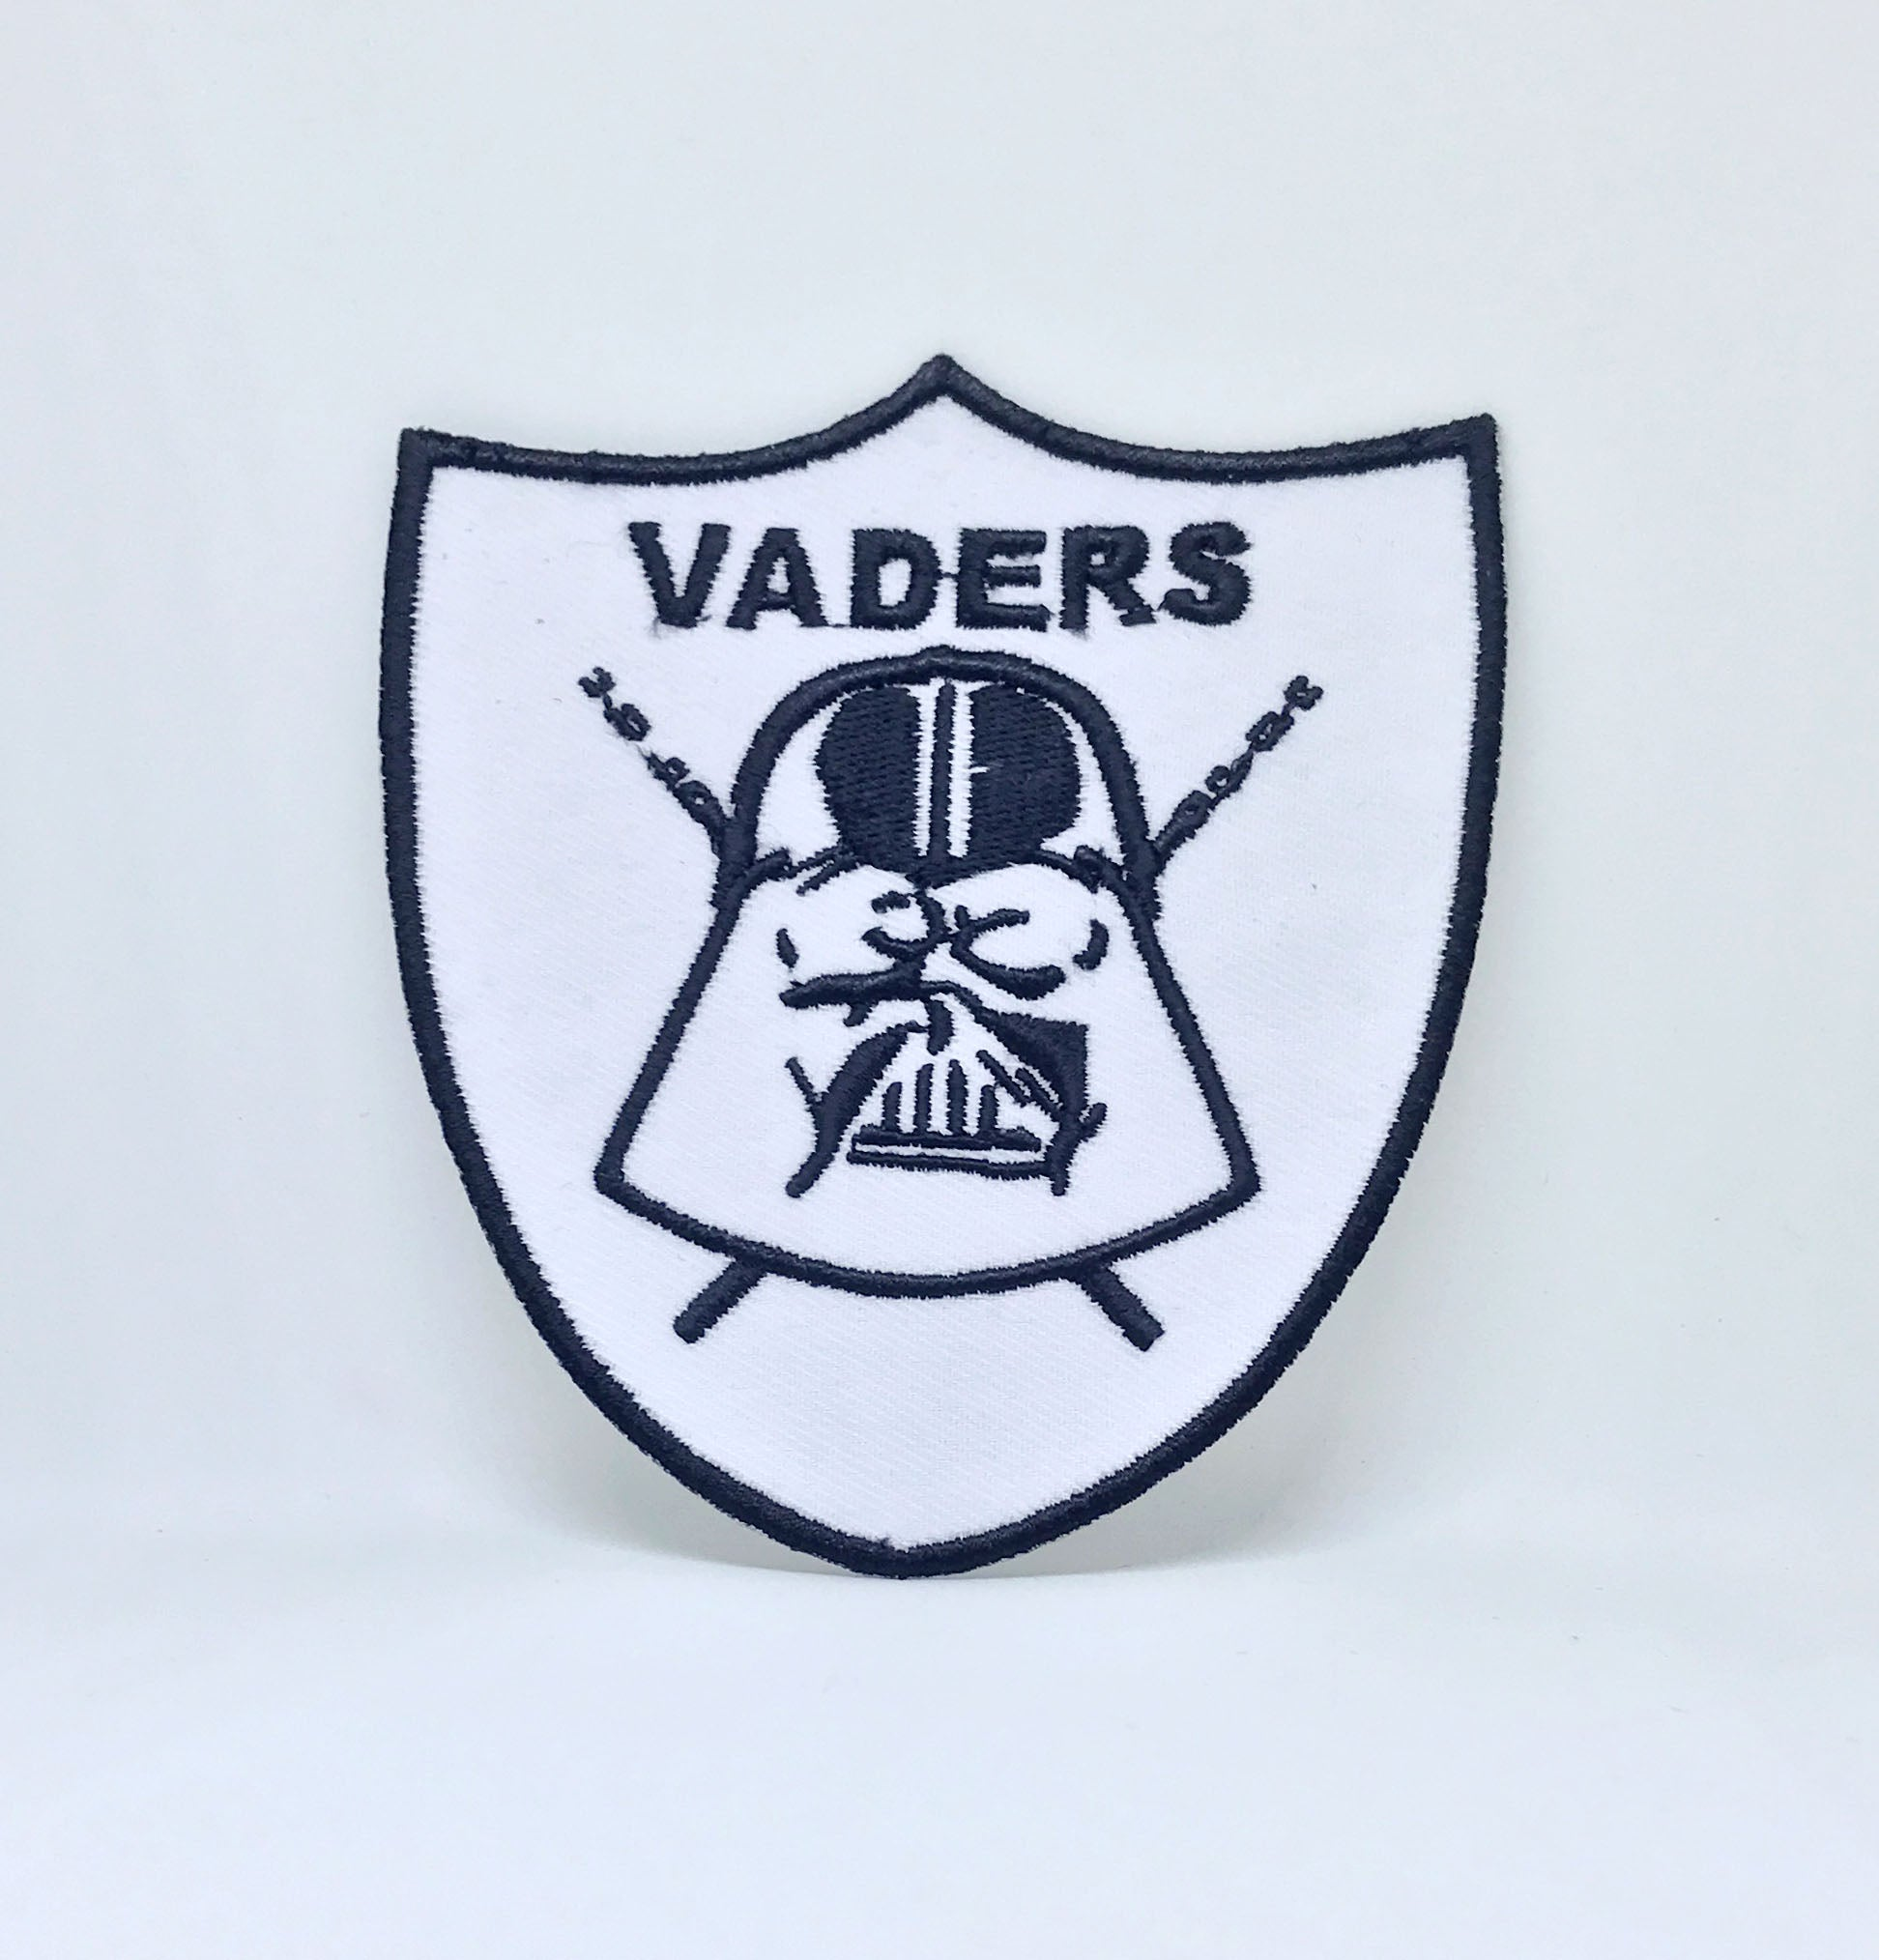 STAR WARS Movies Iron or Sew on Embroidered Patches - Vaders White